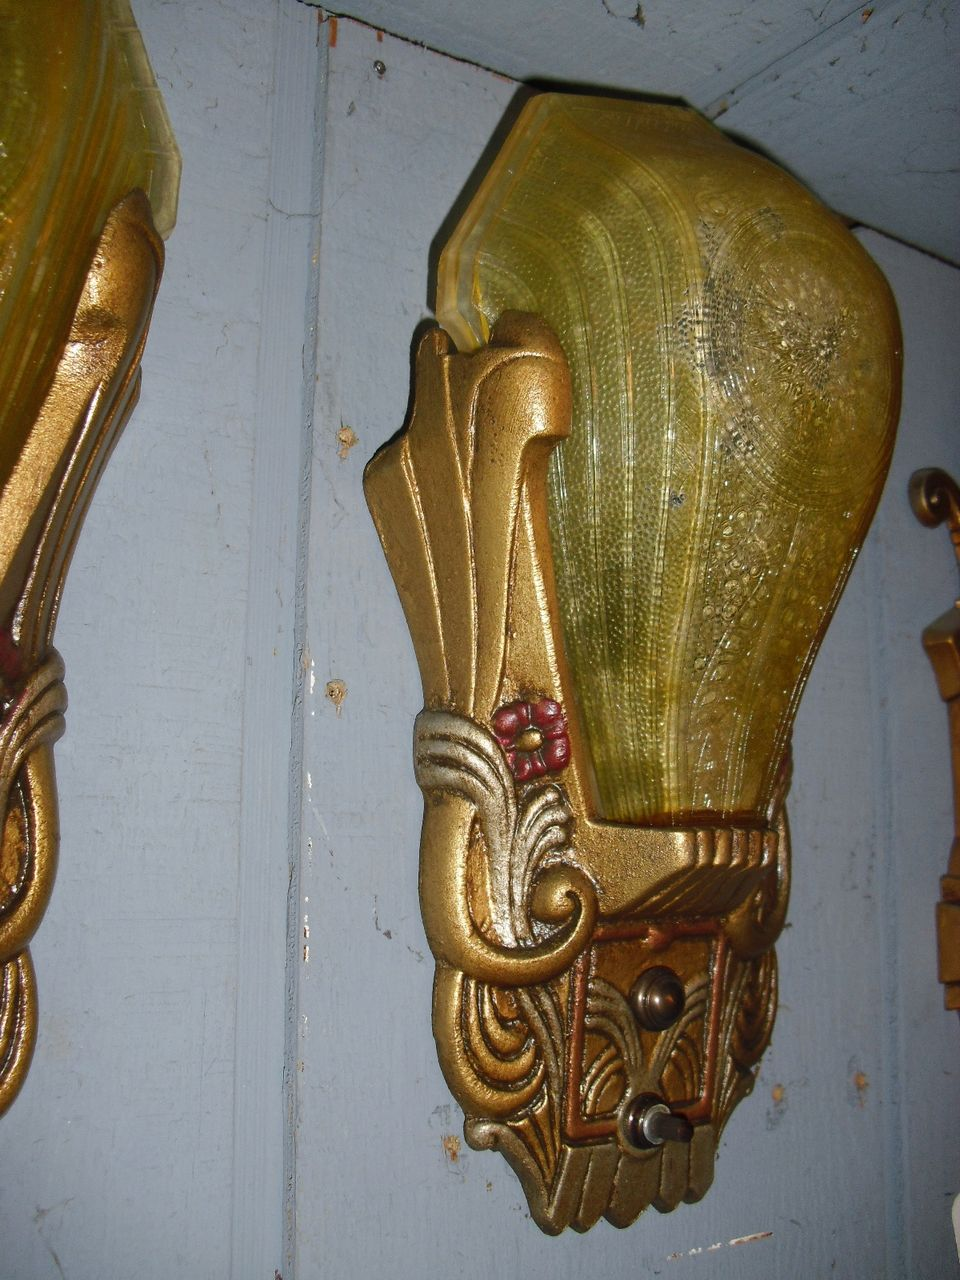 Art Deco Slip Shade Wall Sconces : Art Deco Slip Shade Wall Sconces - Riddle - 2 pairs available from sherlocksantiquelights on ...